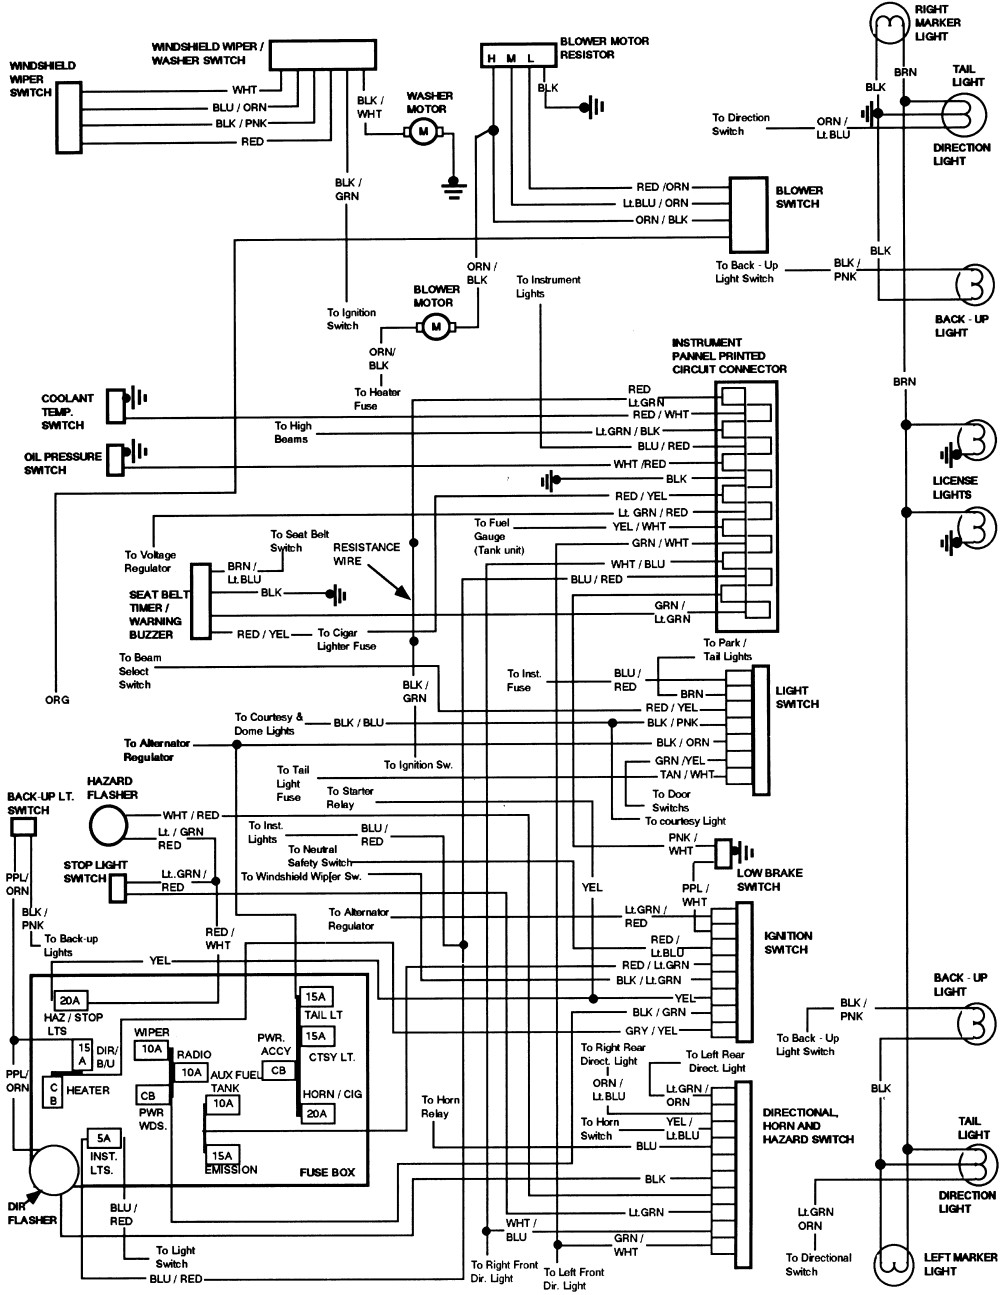 2001 ford f150 wiring diagram new